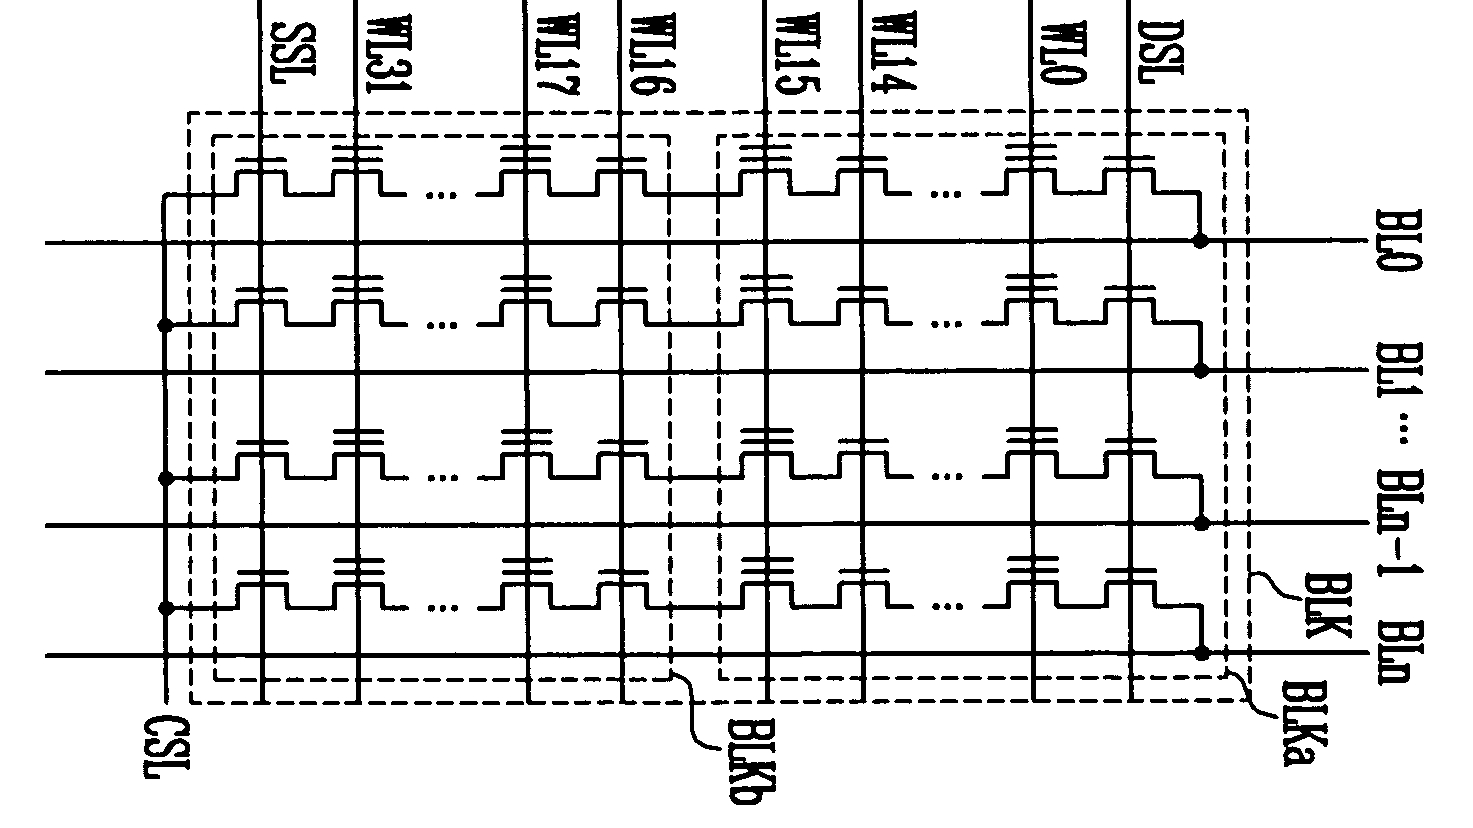 hight resolution of nand flash array circuit diagram from us patent 7 193 897